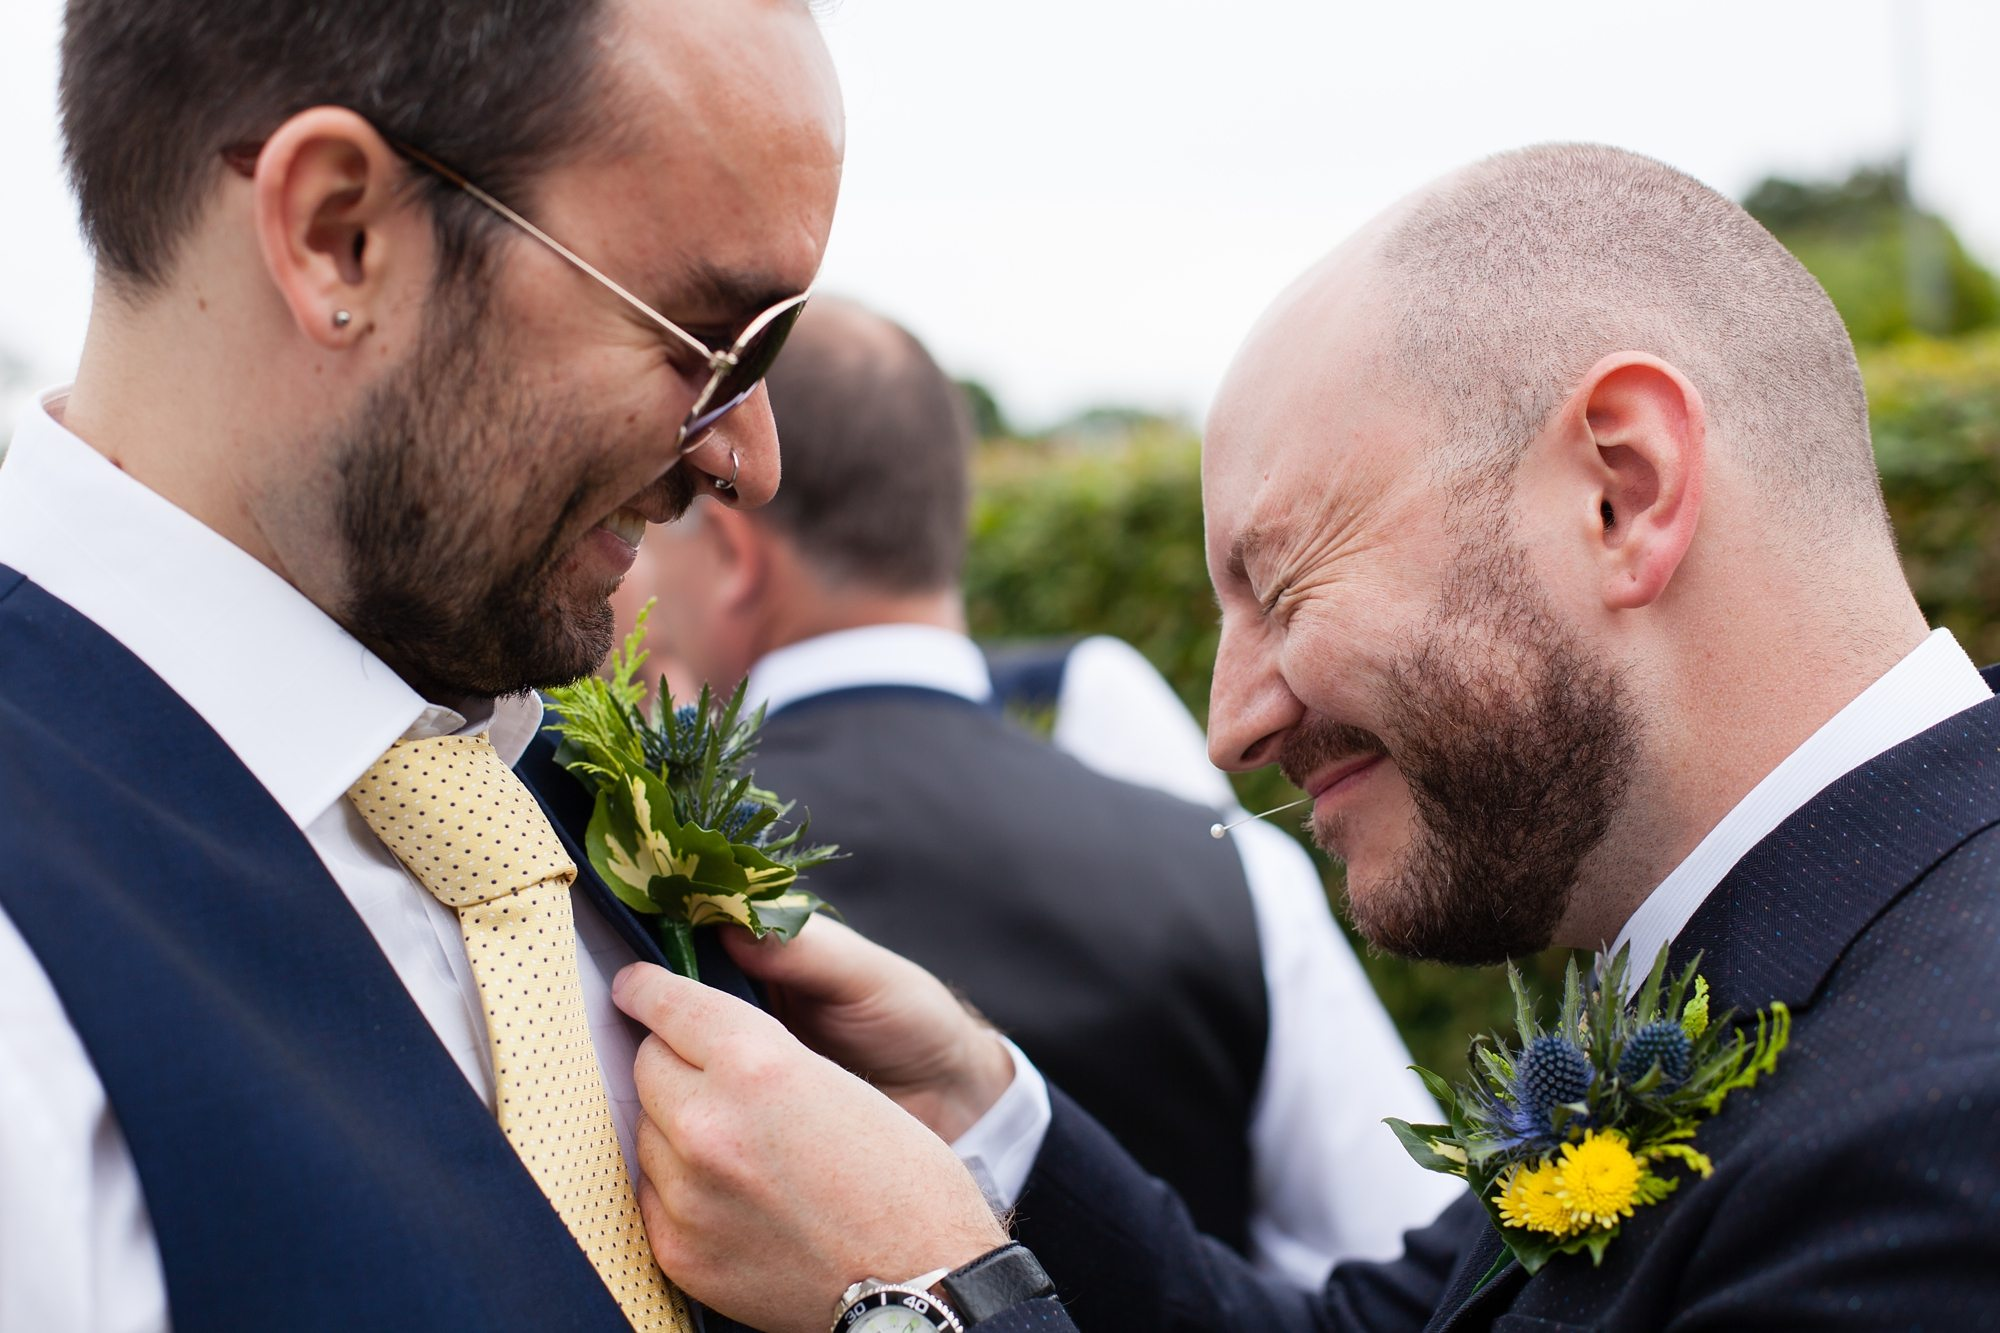 groom with pin in mouth at York Barn wedding with groomsman with sunglasses